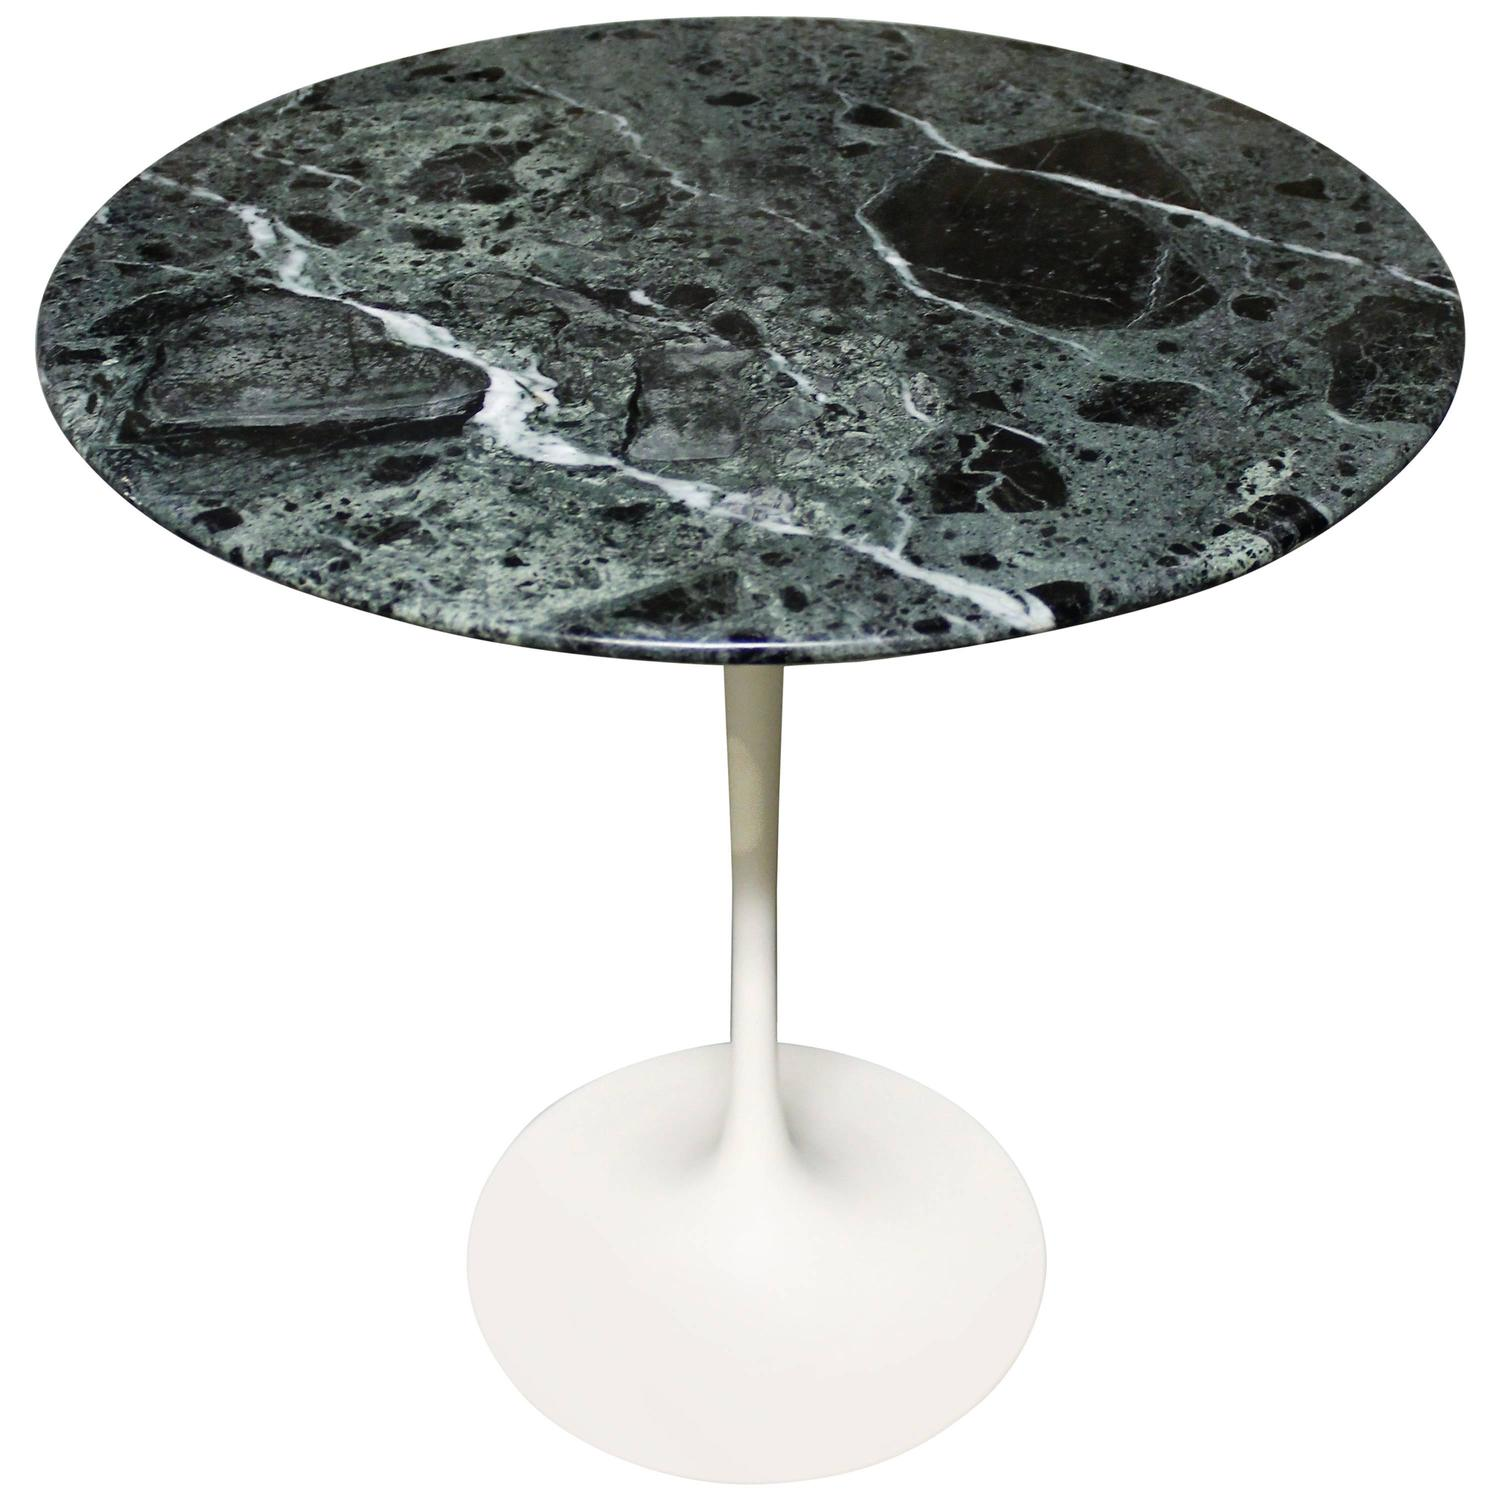 Eero Saarinen Tulip Side Table For Knoll With U0027Verdi Alpiu0027 Green Marble Top  At 1stdibs